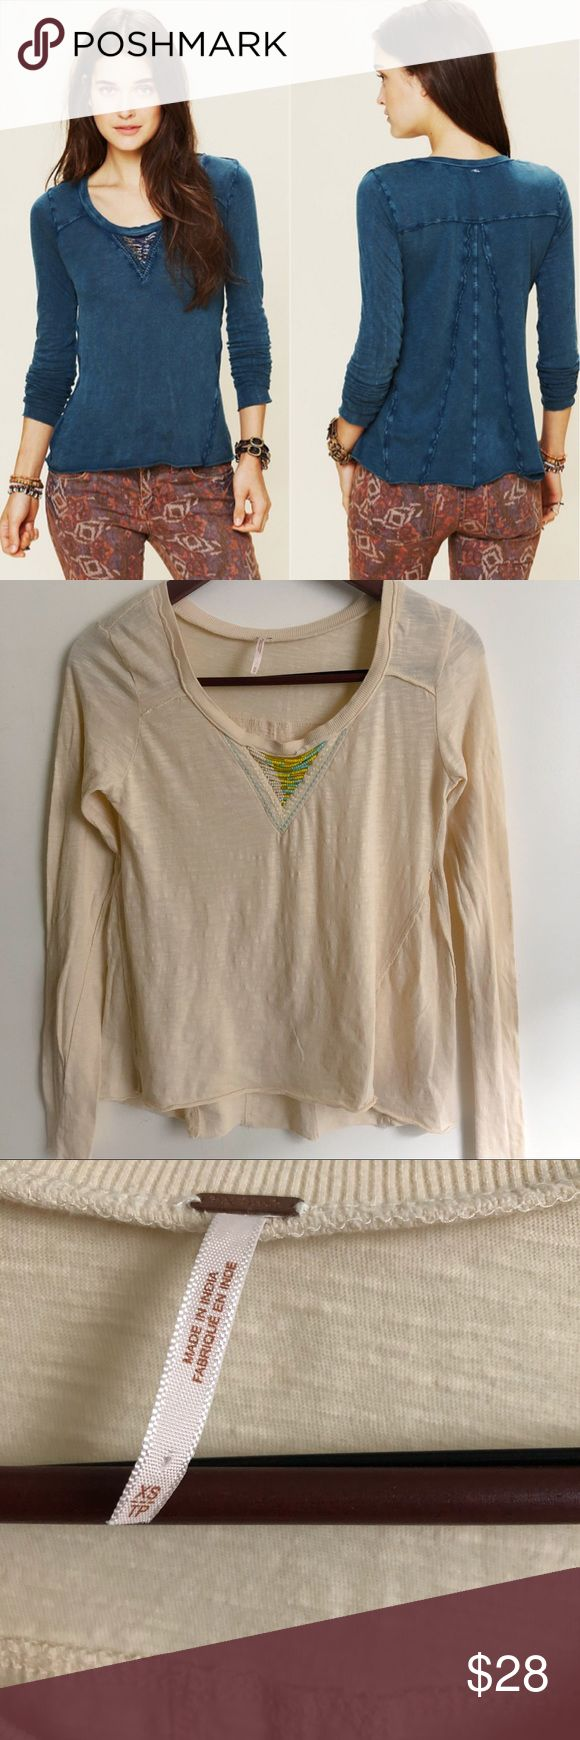 Free People Cream Long Sleeve Top Free people Top. Material: 100% Cotton. Beautiful cream color in great preowned condition 🚫No Trades🚫 Free People Tops Tees - Long Sleeve